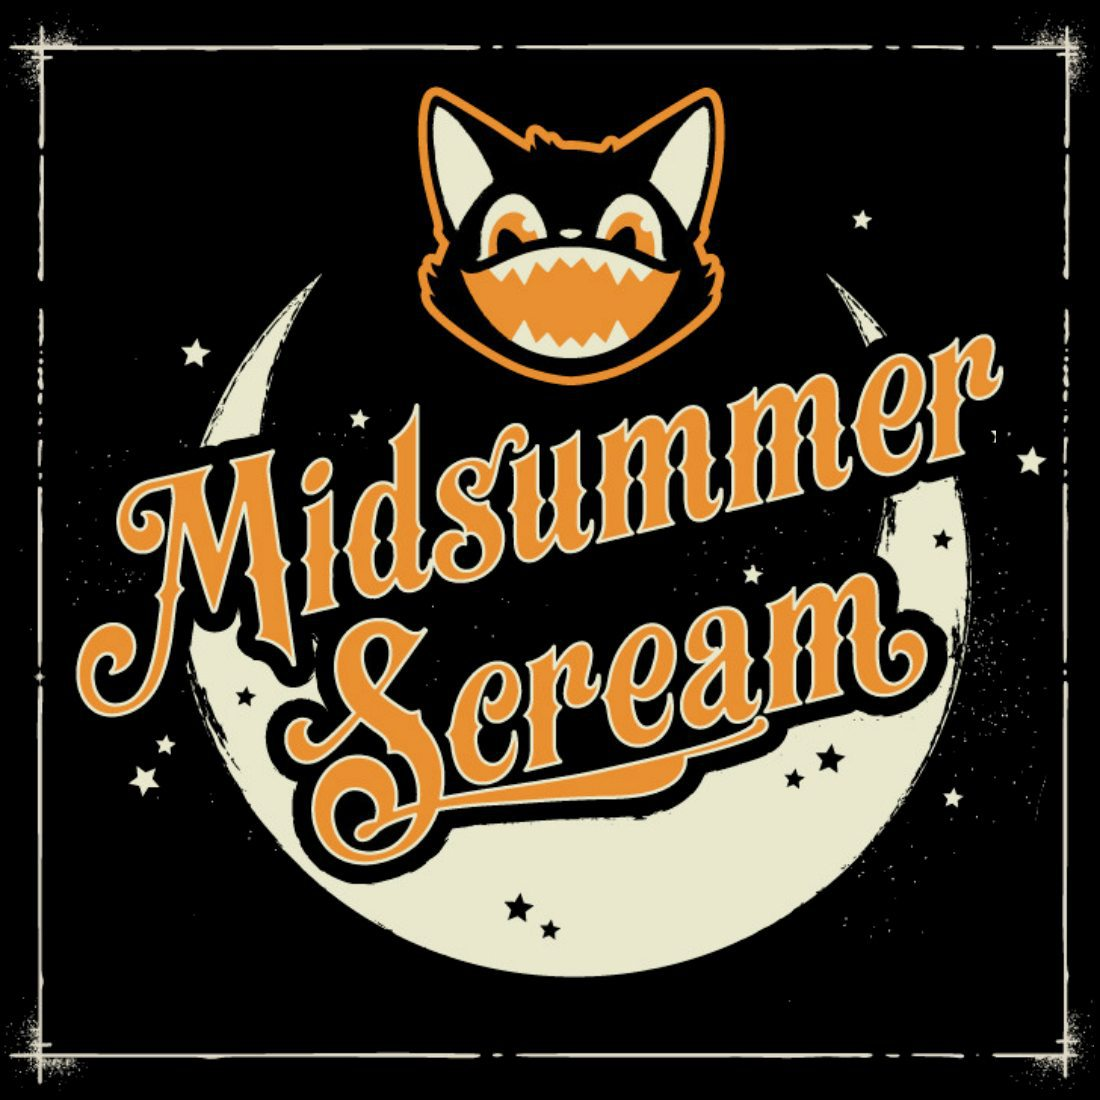 Midsummer Scream - Premier Halloween Convention - Scares, Gore, Delight - Haunting